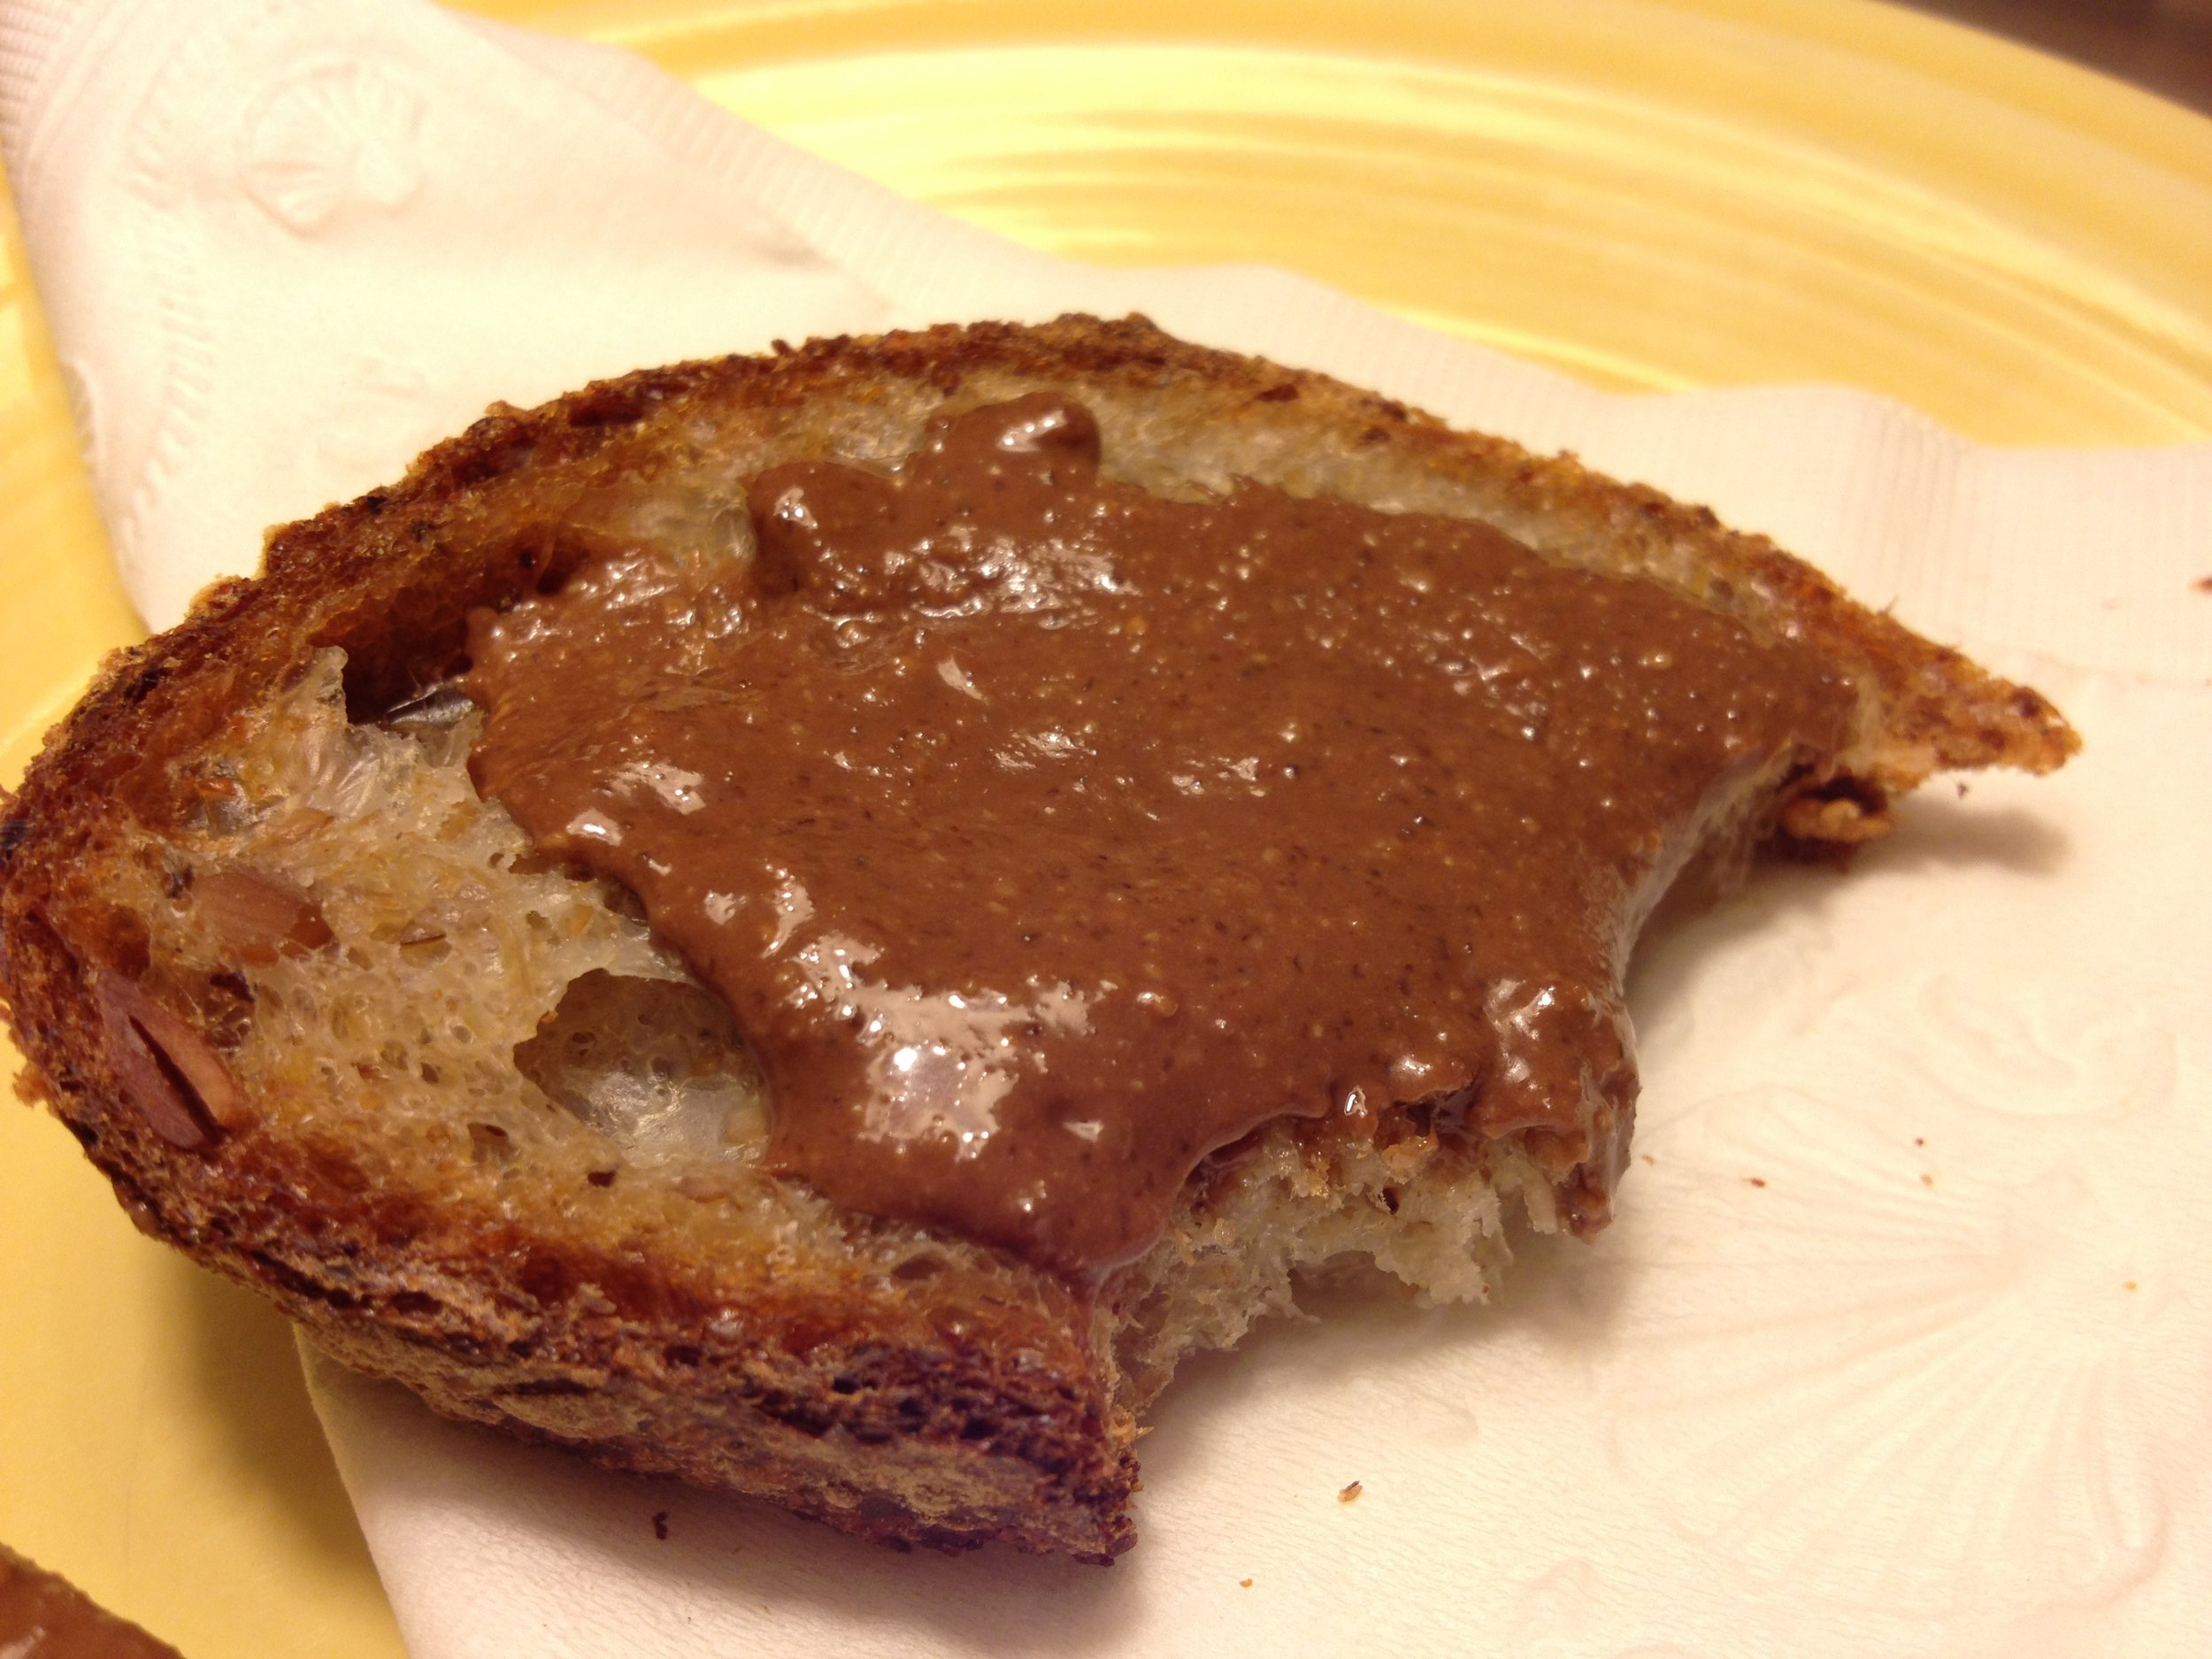 Multigrain Bread with Crunchy Chocolate Hazelnut Spread made with Olive Oil